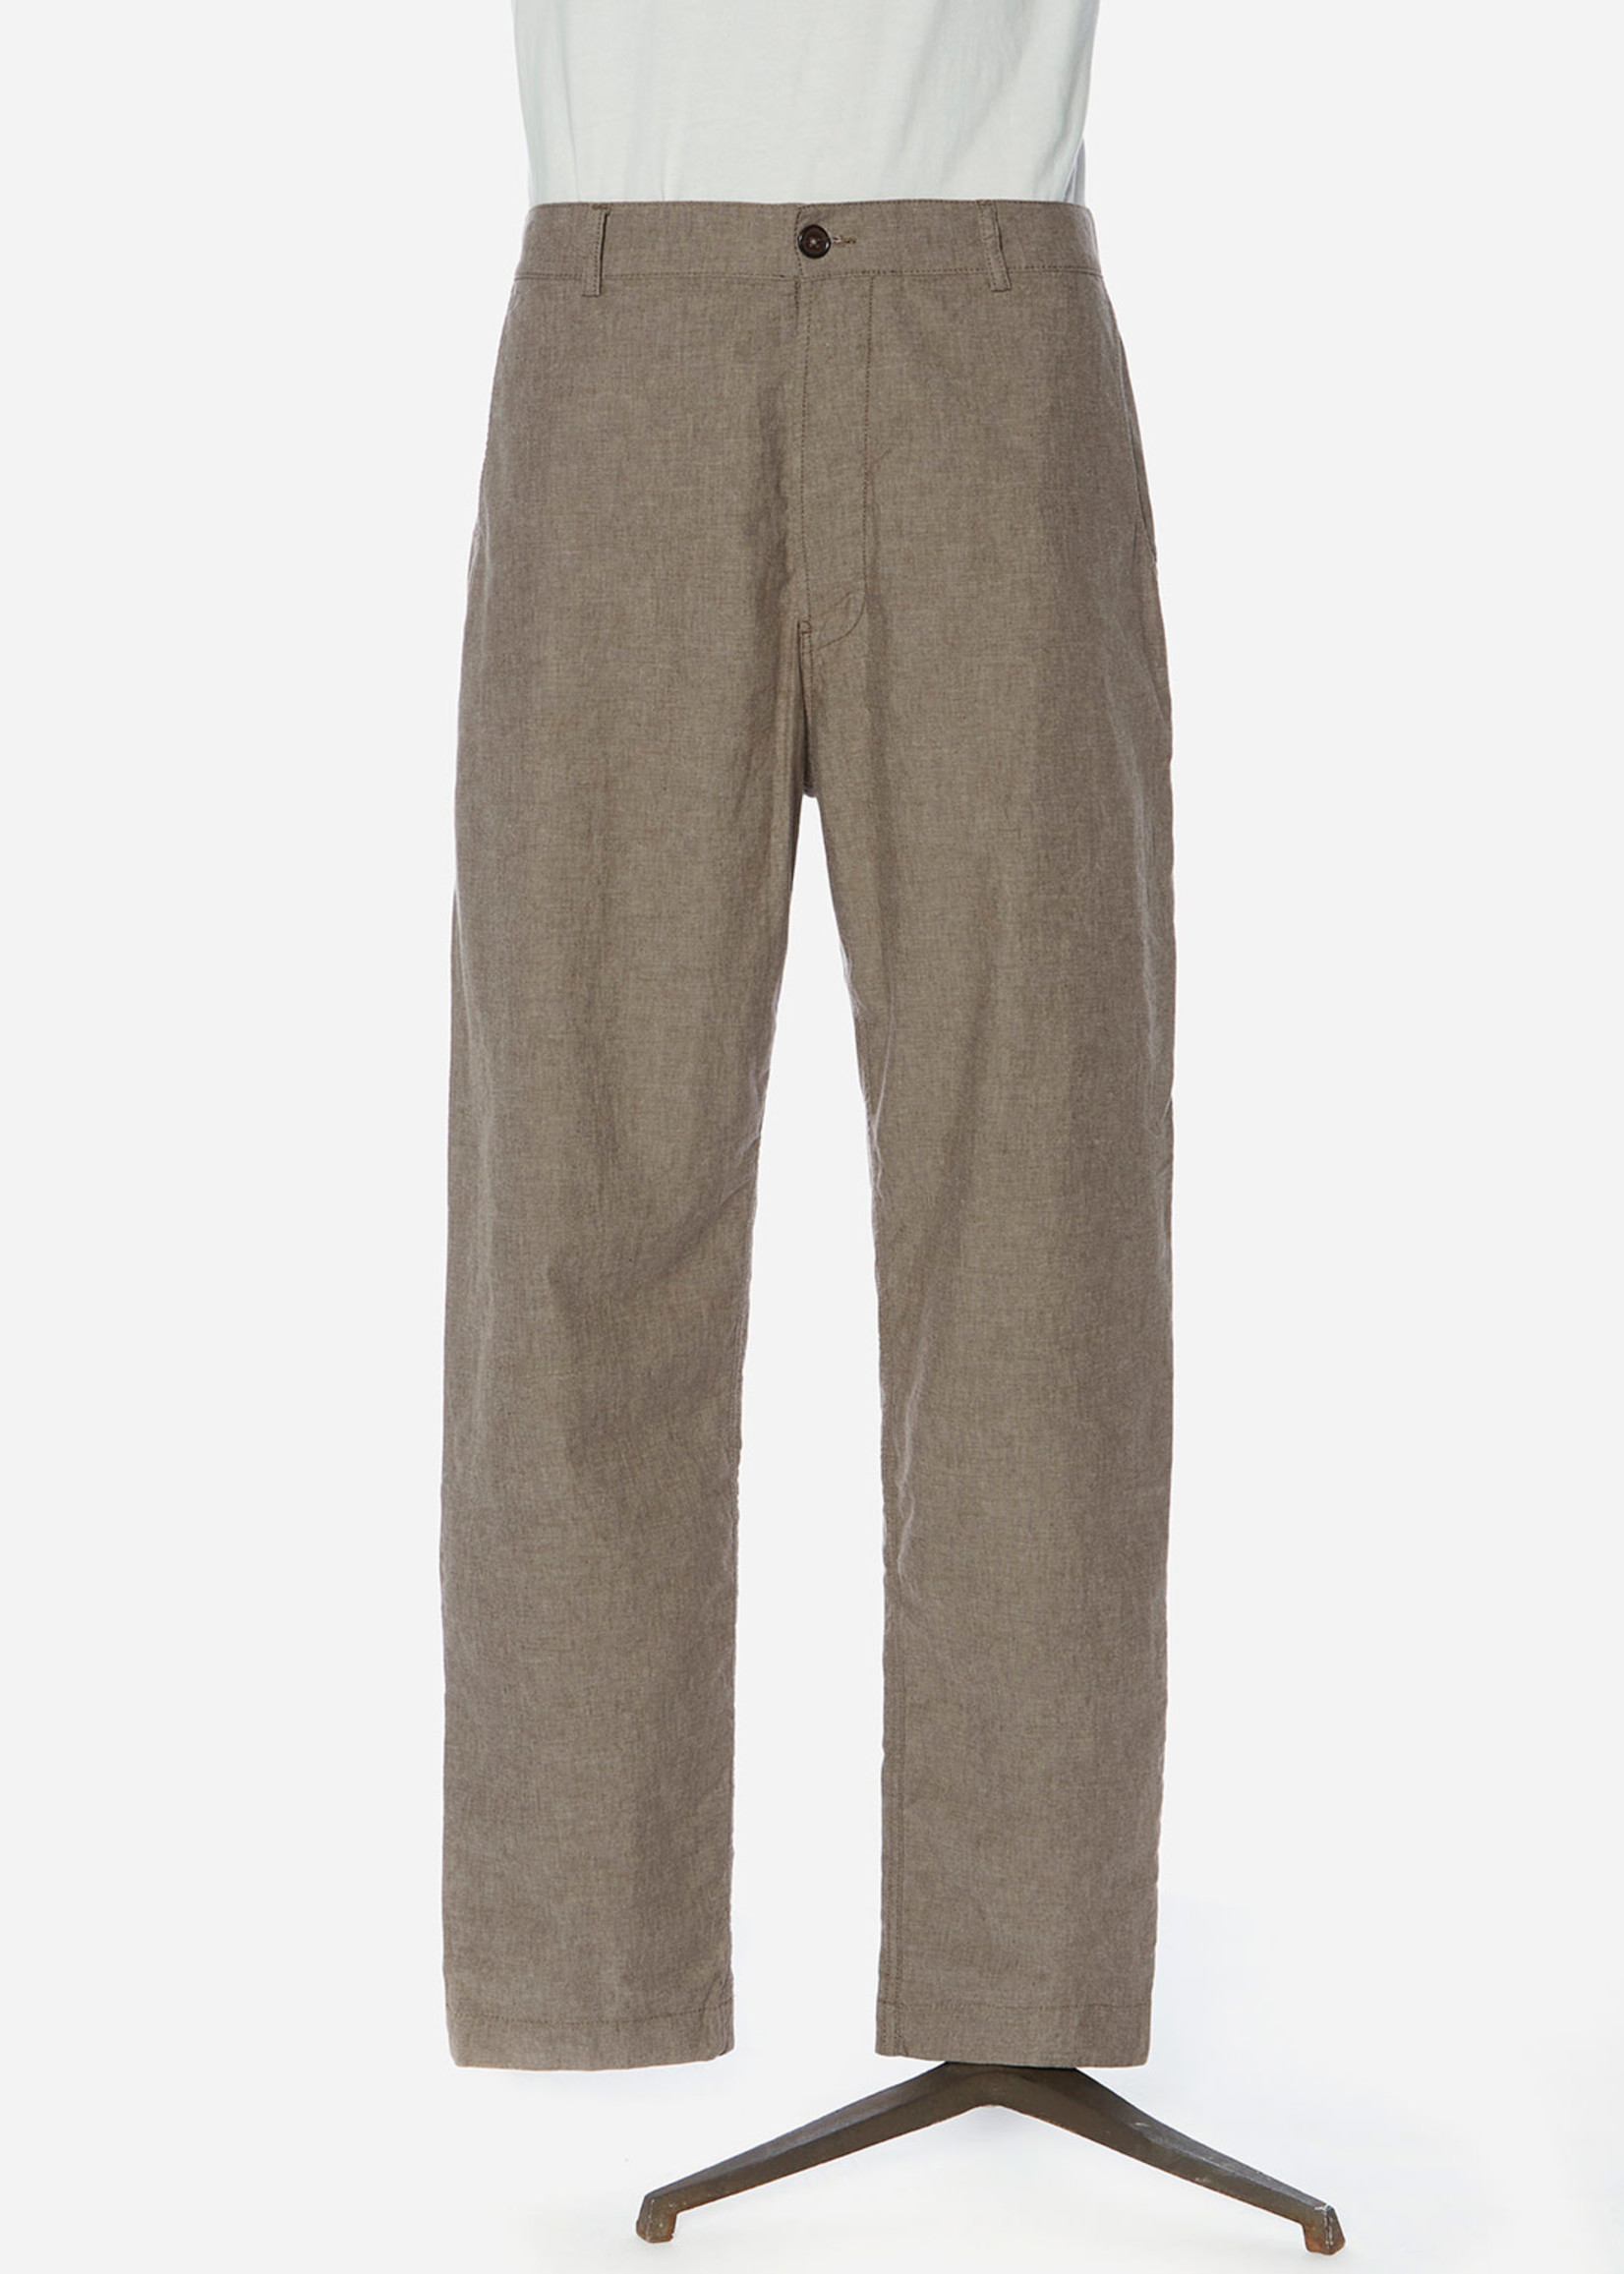 Universal Works Universal Works Military Chino Sand Cotton Washed Suiting